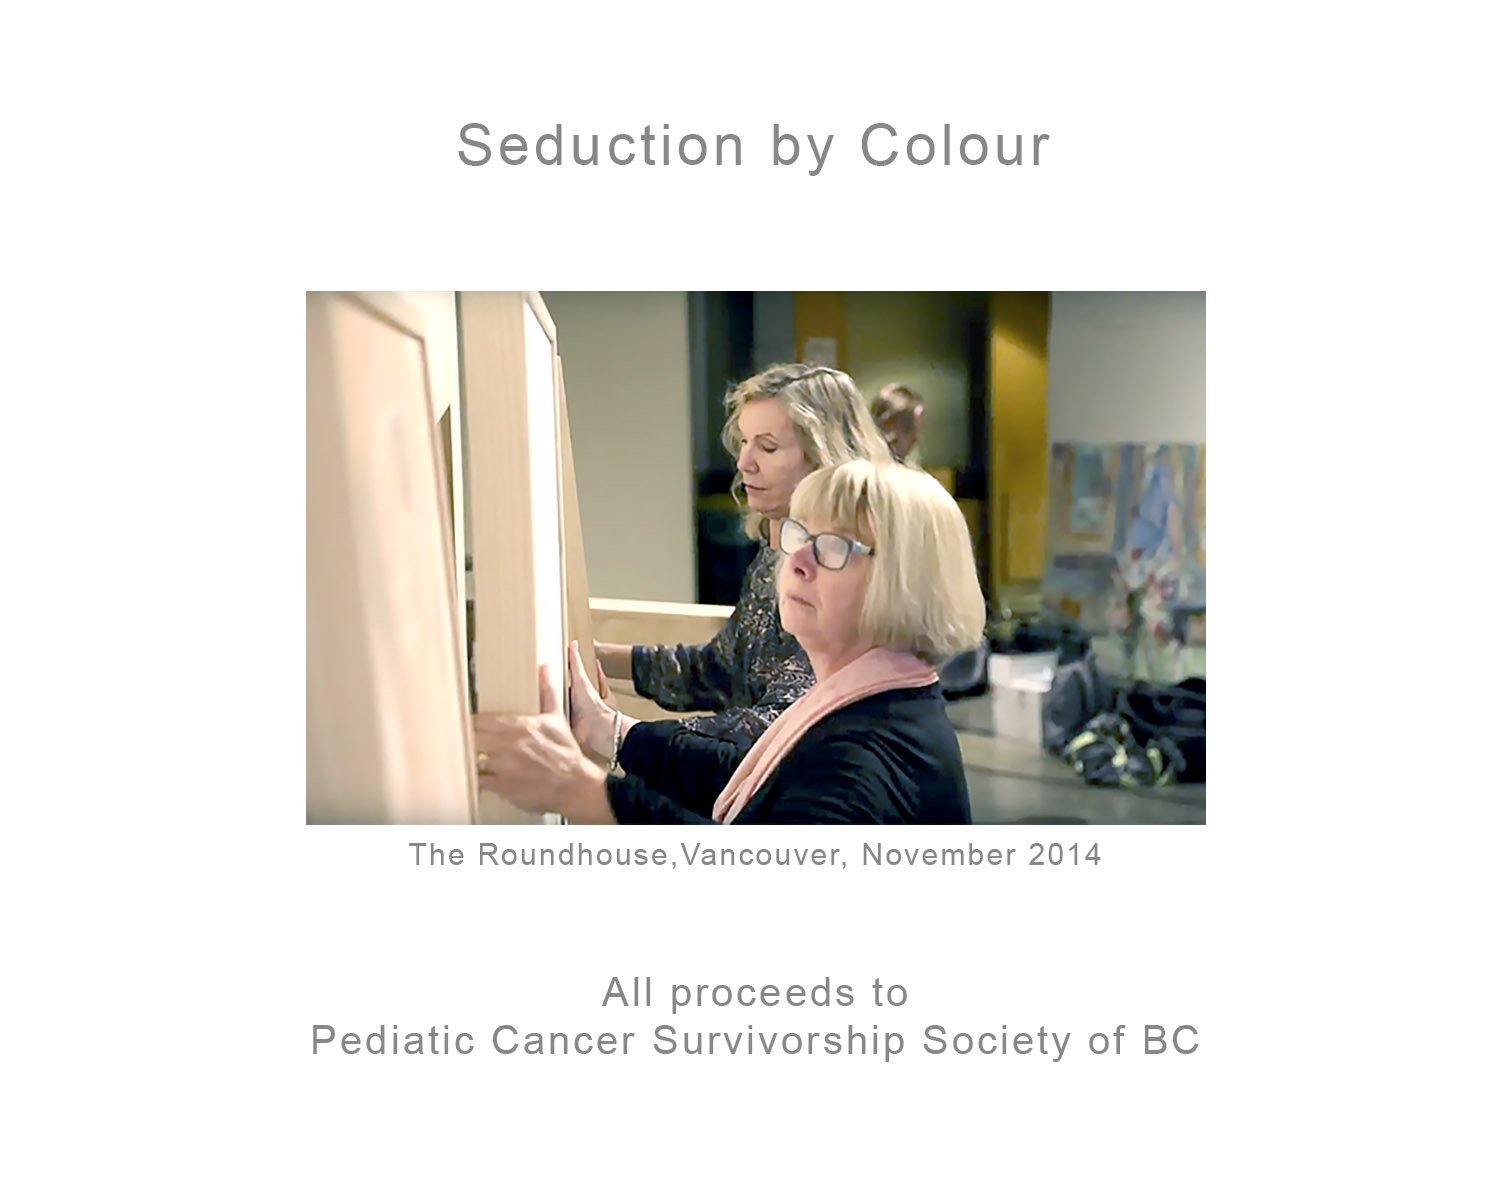 2014 Seduction by Colour Exhibition